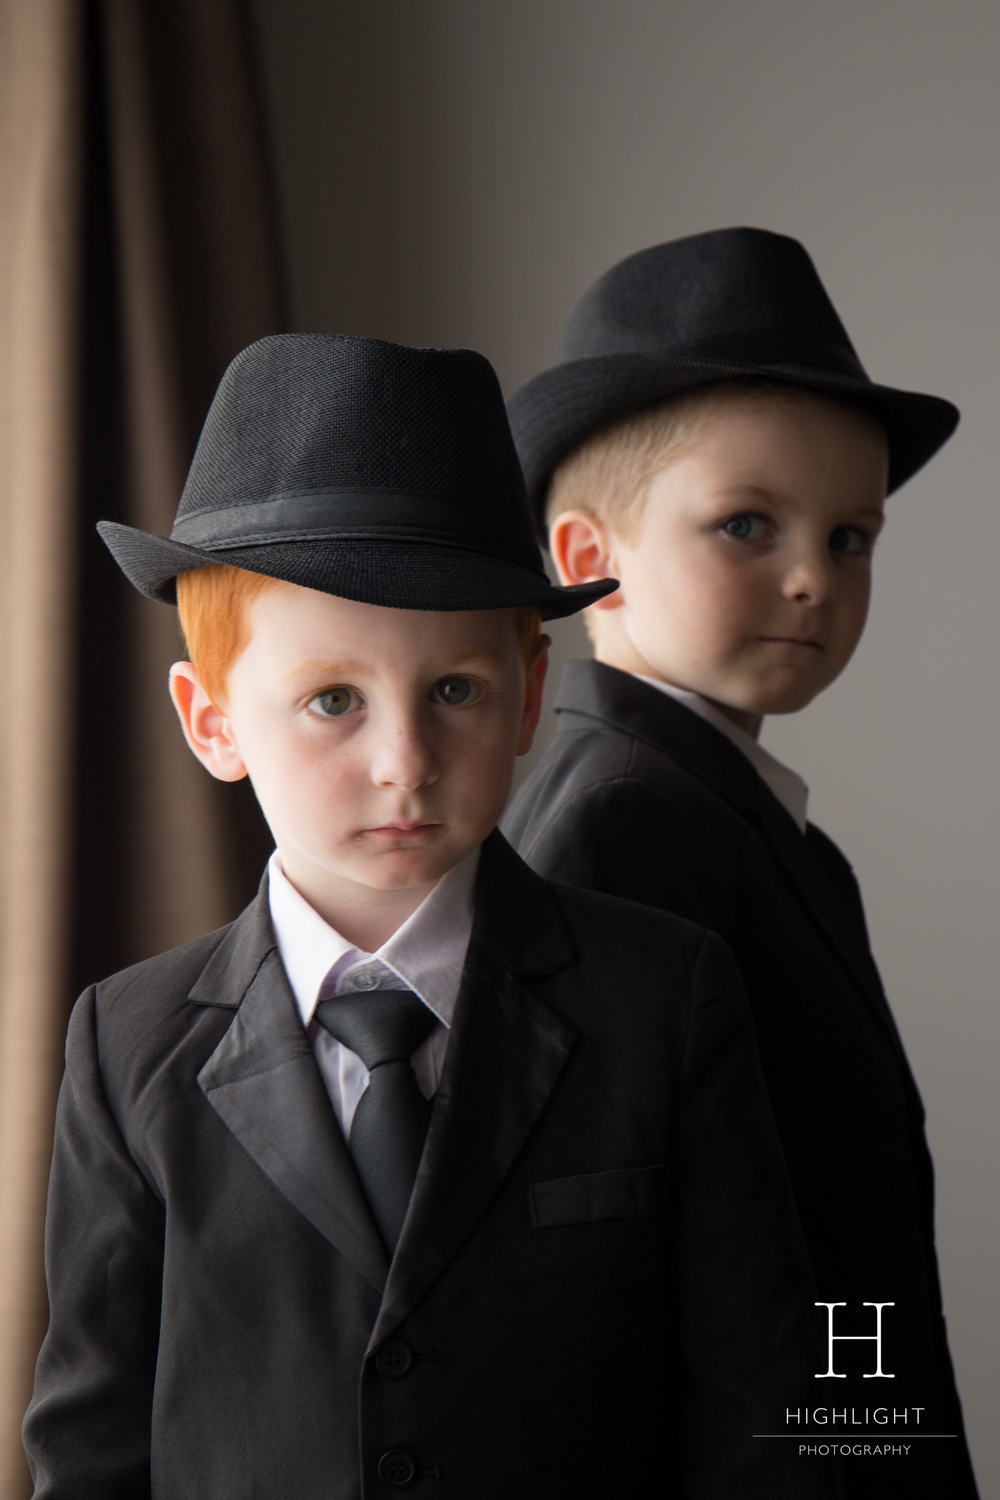 highlight_photography_wedding_new_zealand_kids_hats.jpg